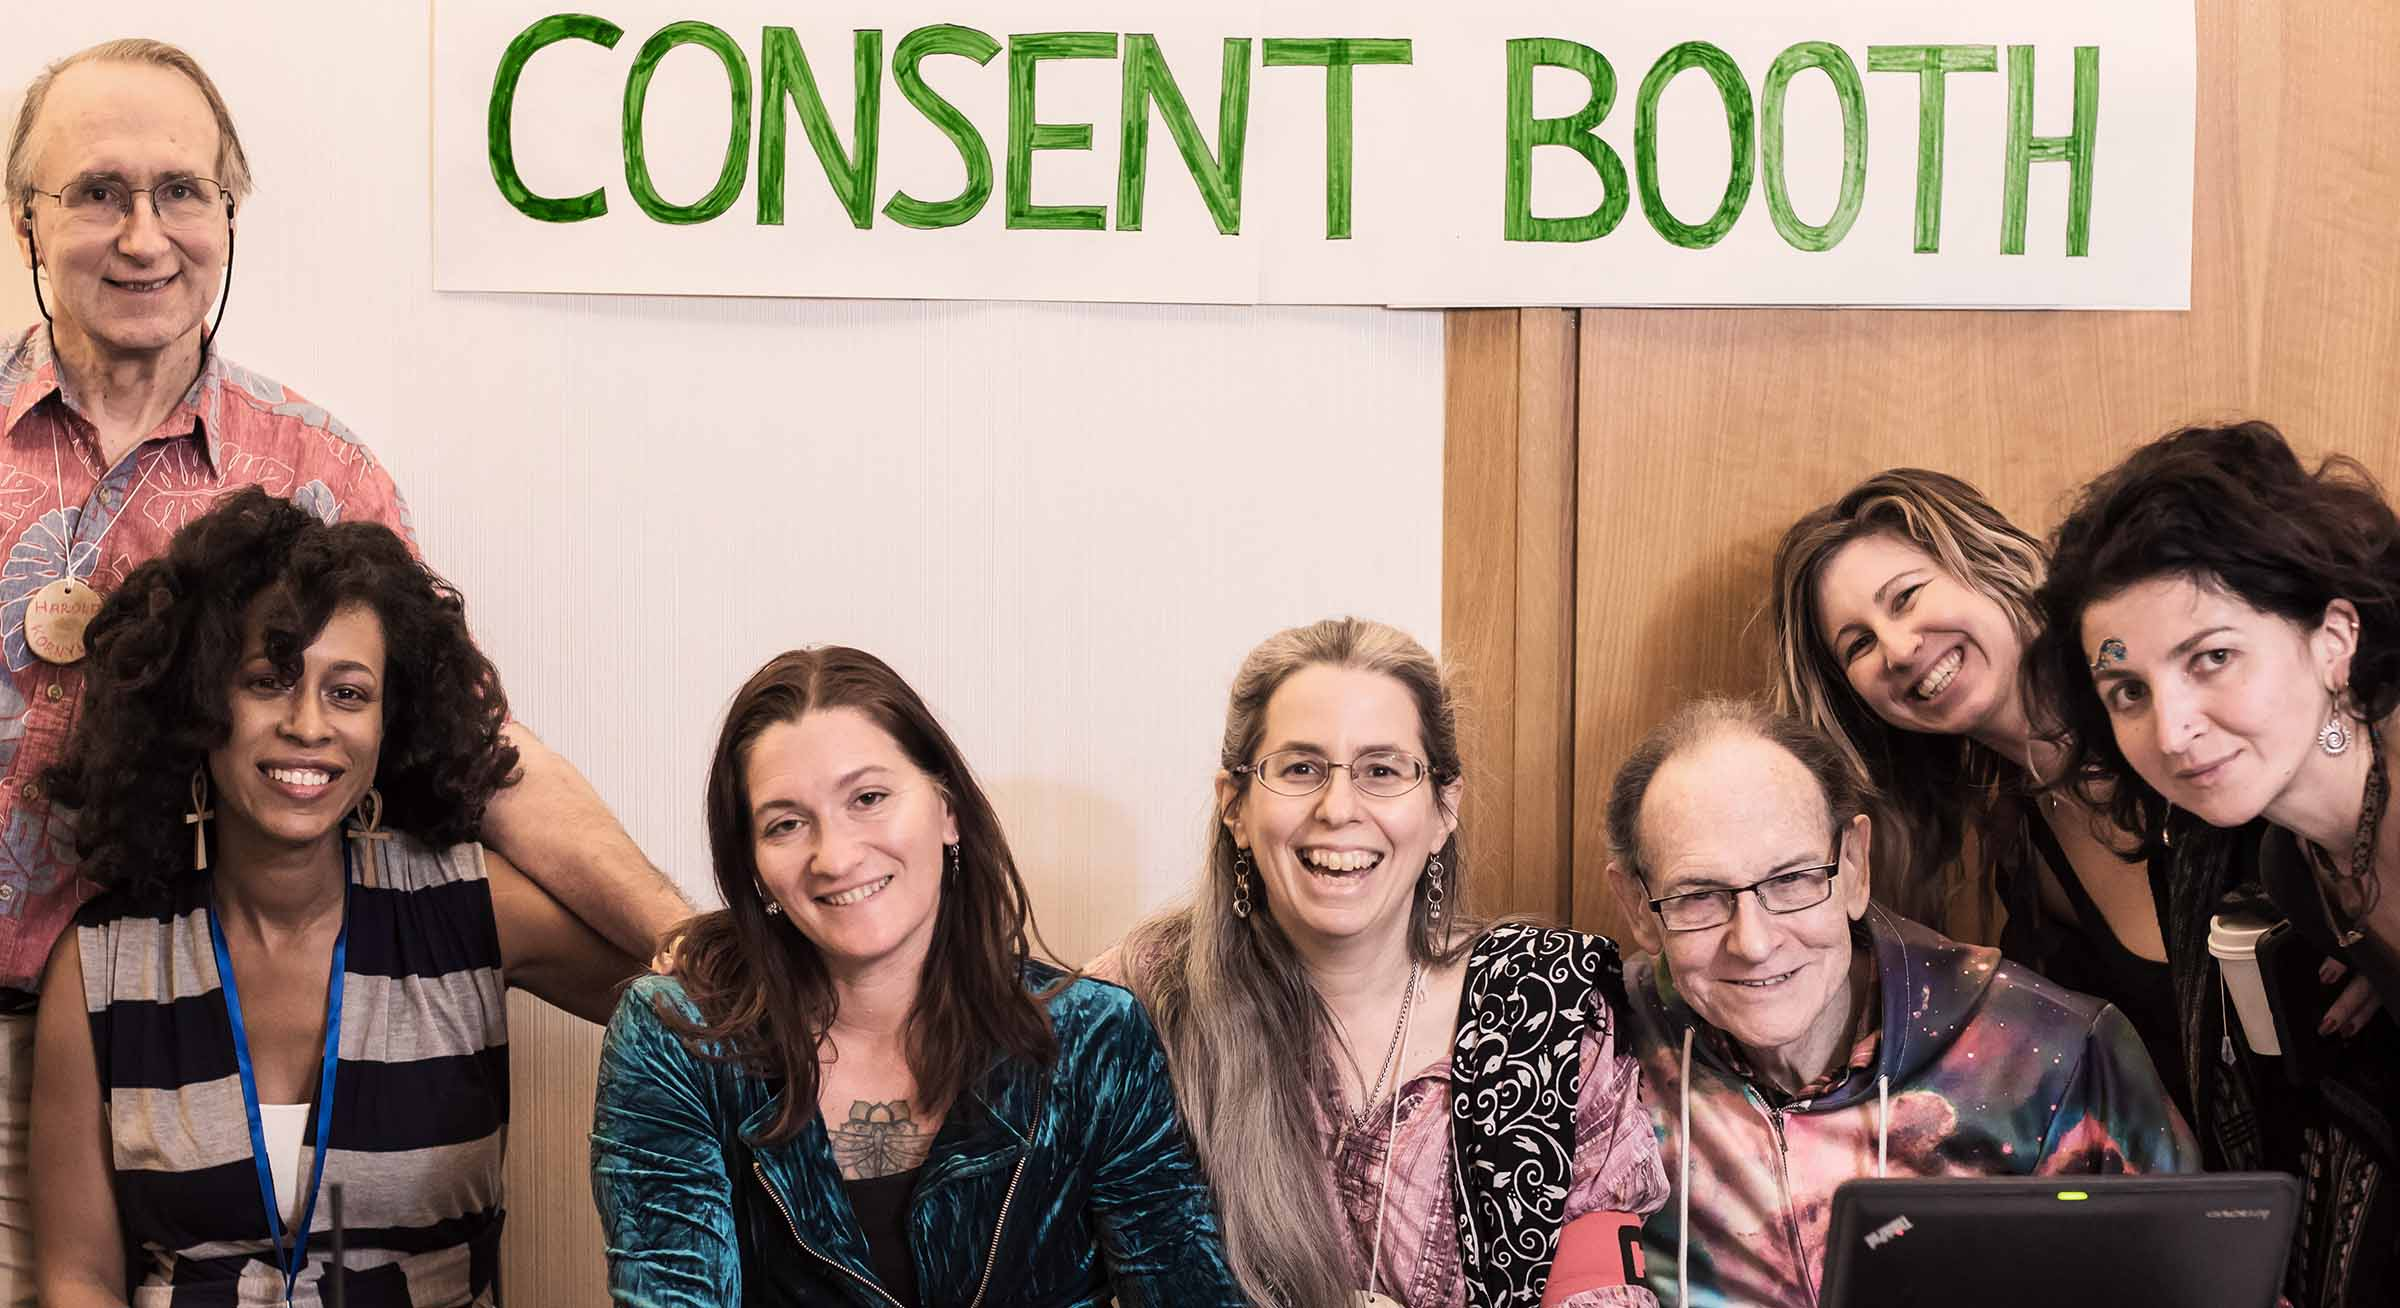 consent booth master 2